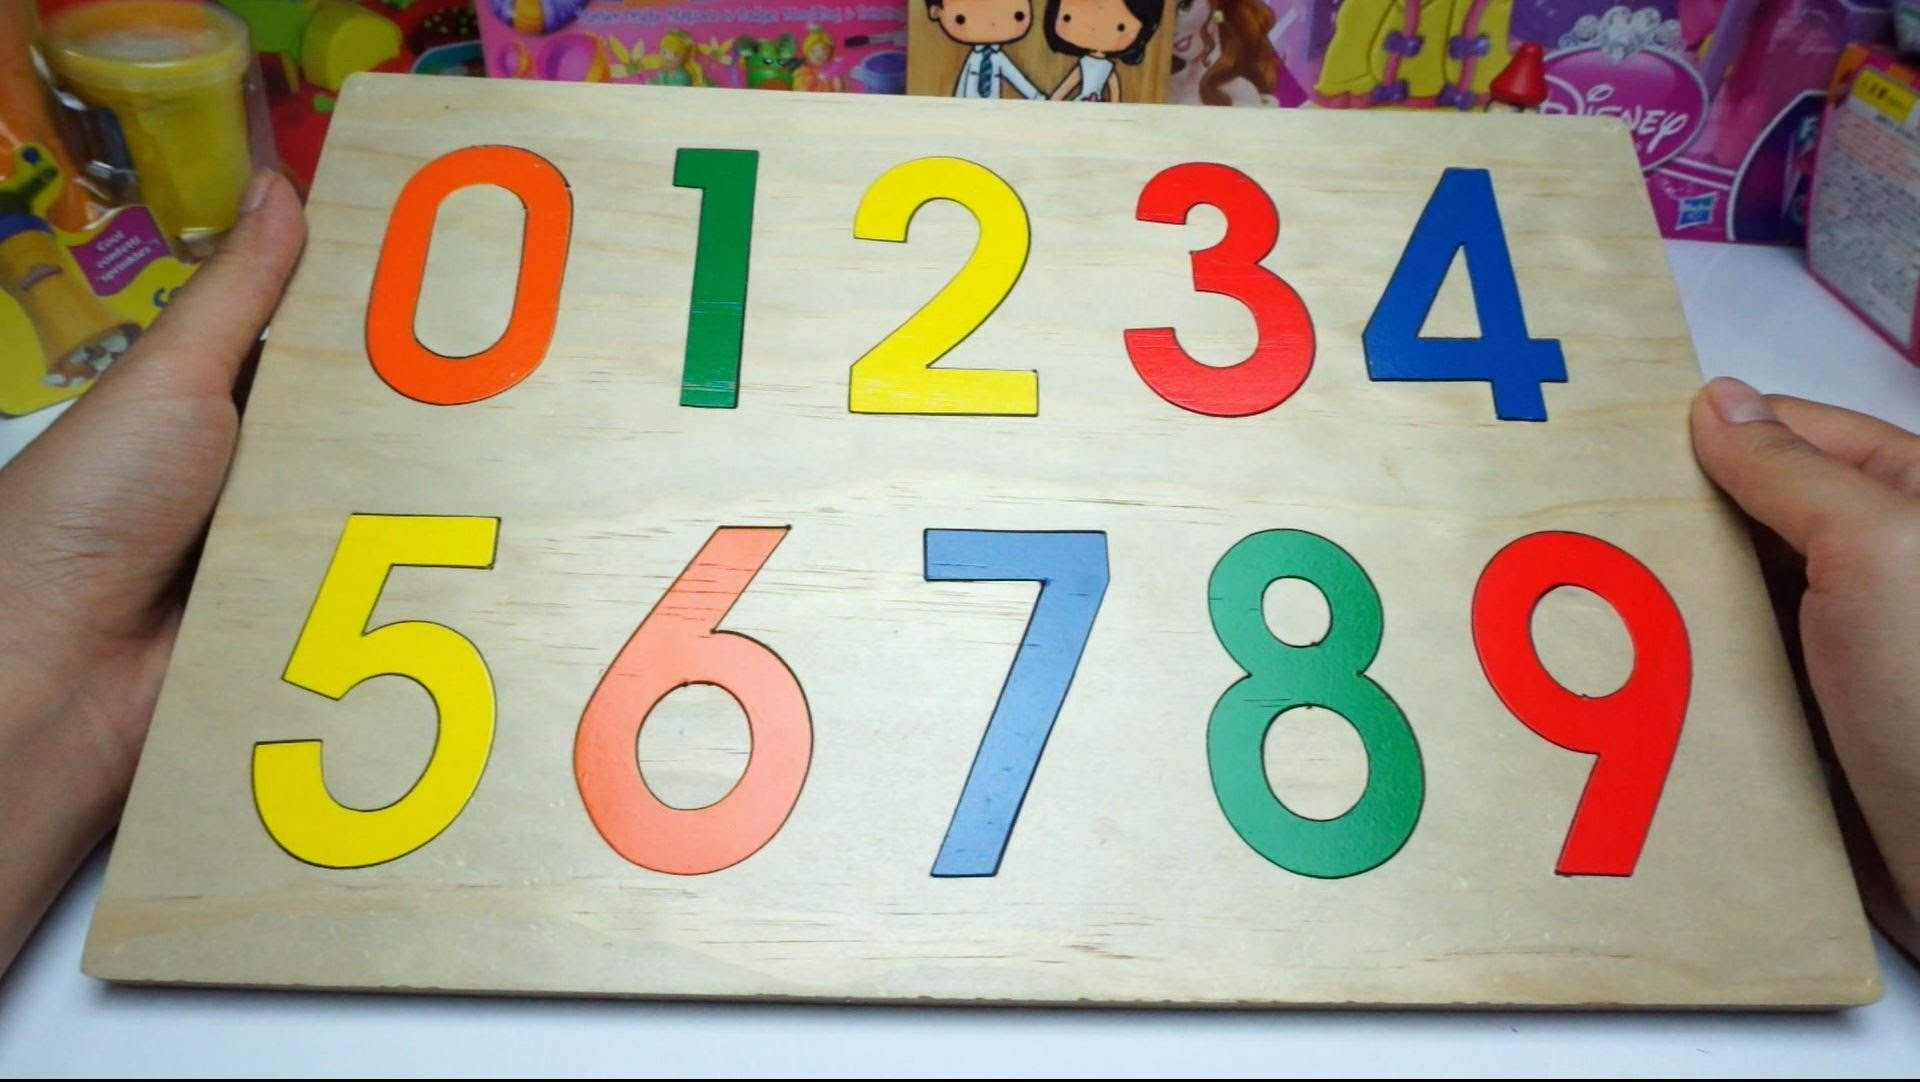 Learn Numbers for Children Wood Toy 123 - YouTube